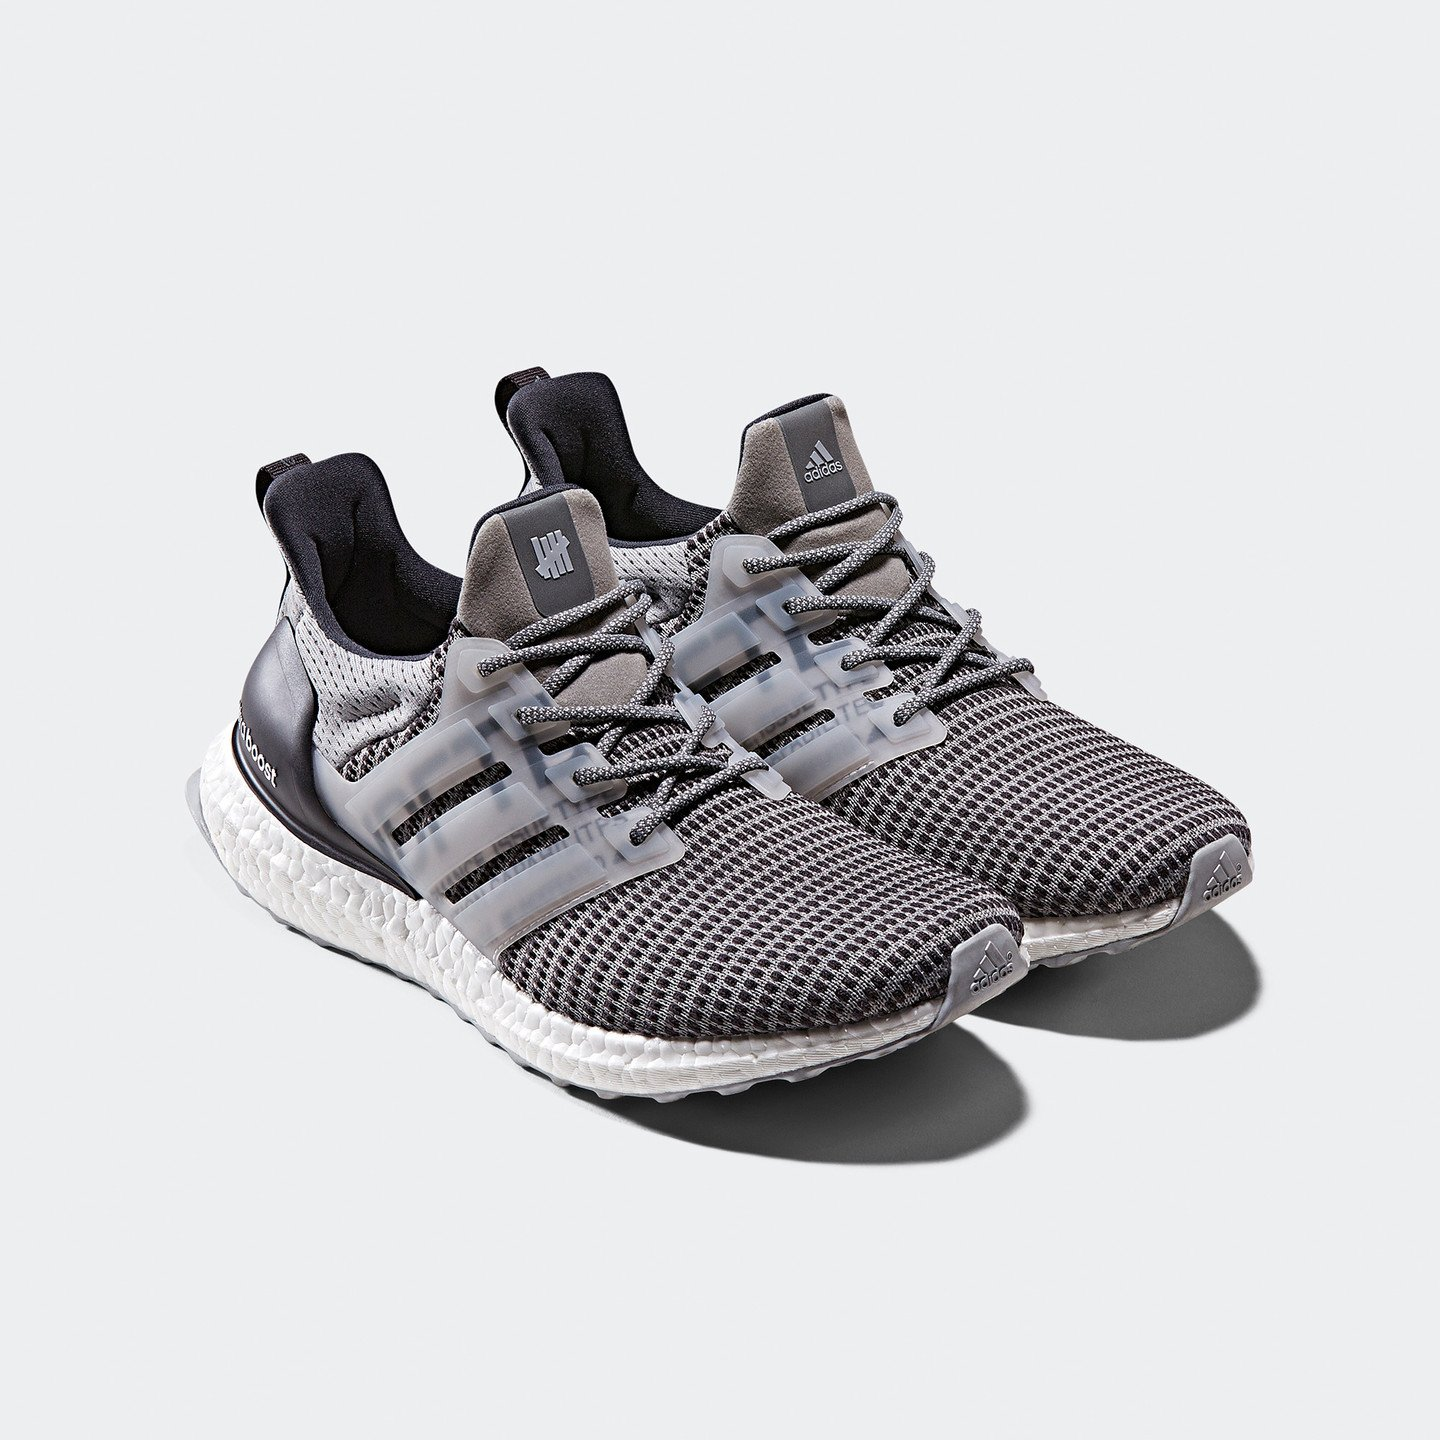 Adidas Ultra Boost 'UNDFTD' Clear Onyx / Cool Grey CG7148